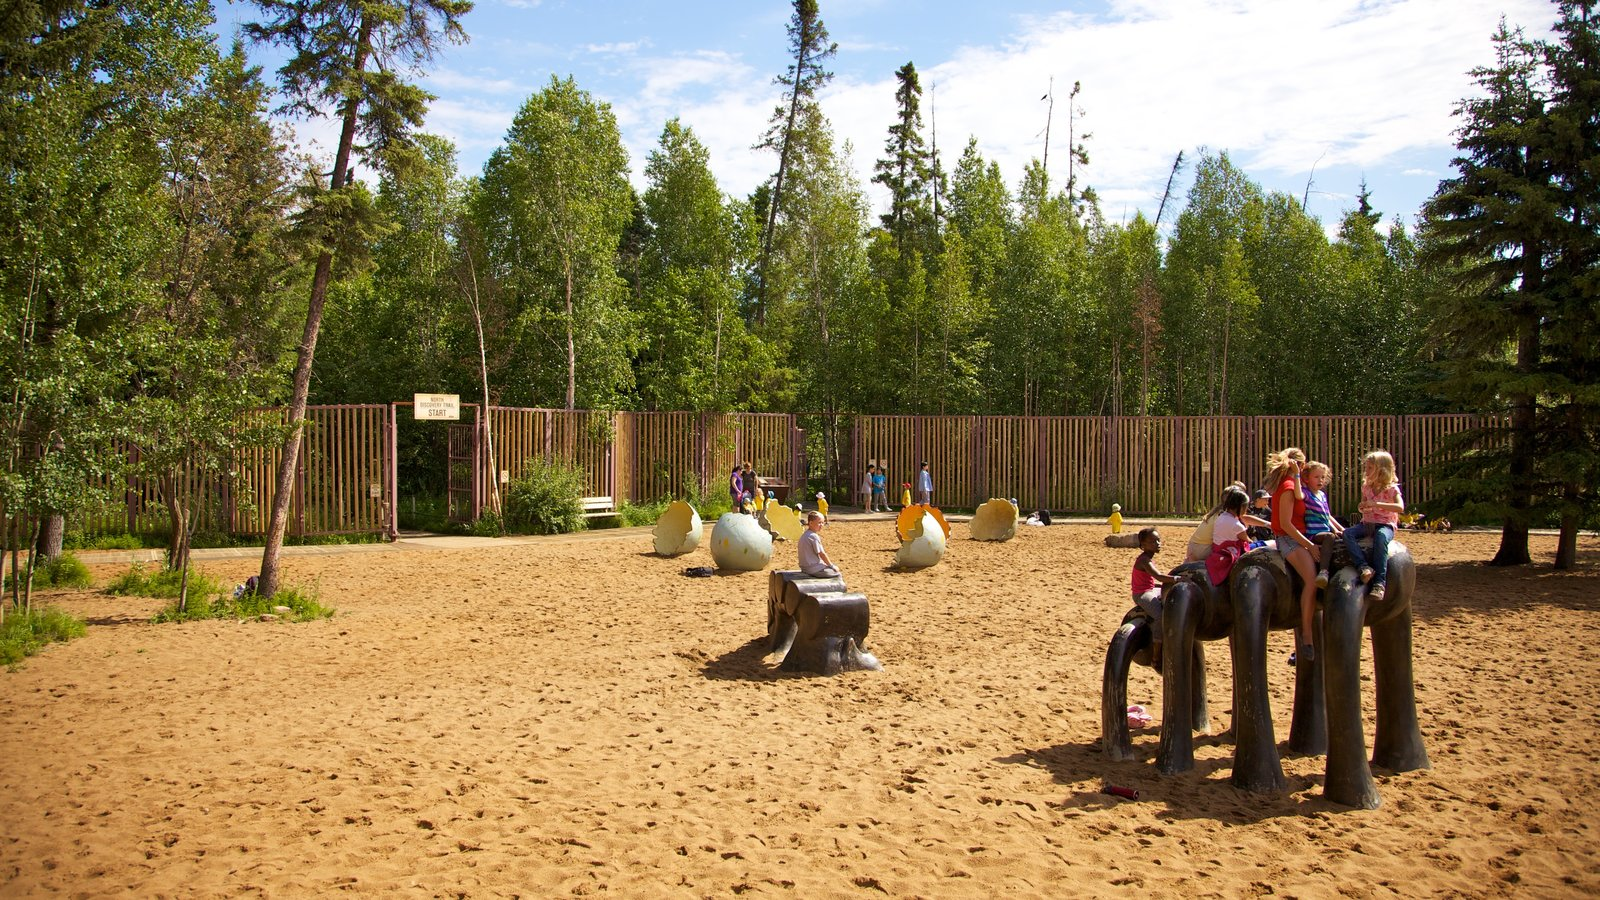 Jurassic Forest featuring a playground and a garden as well as children